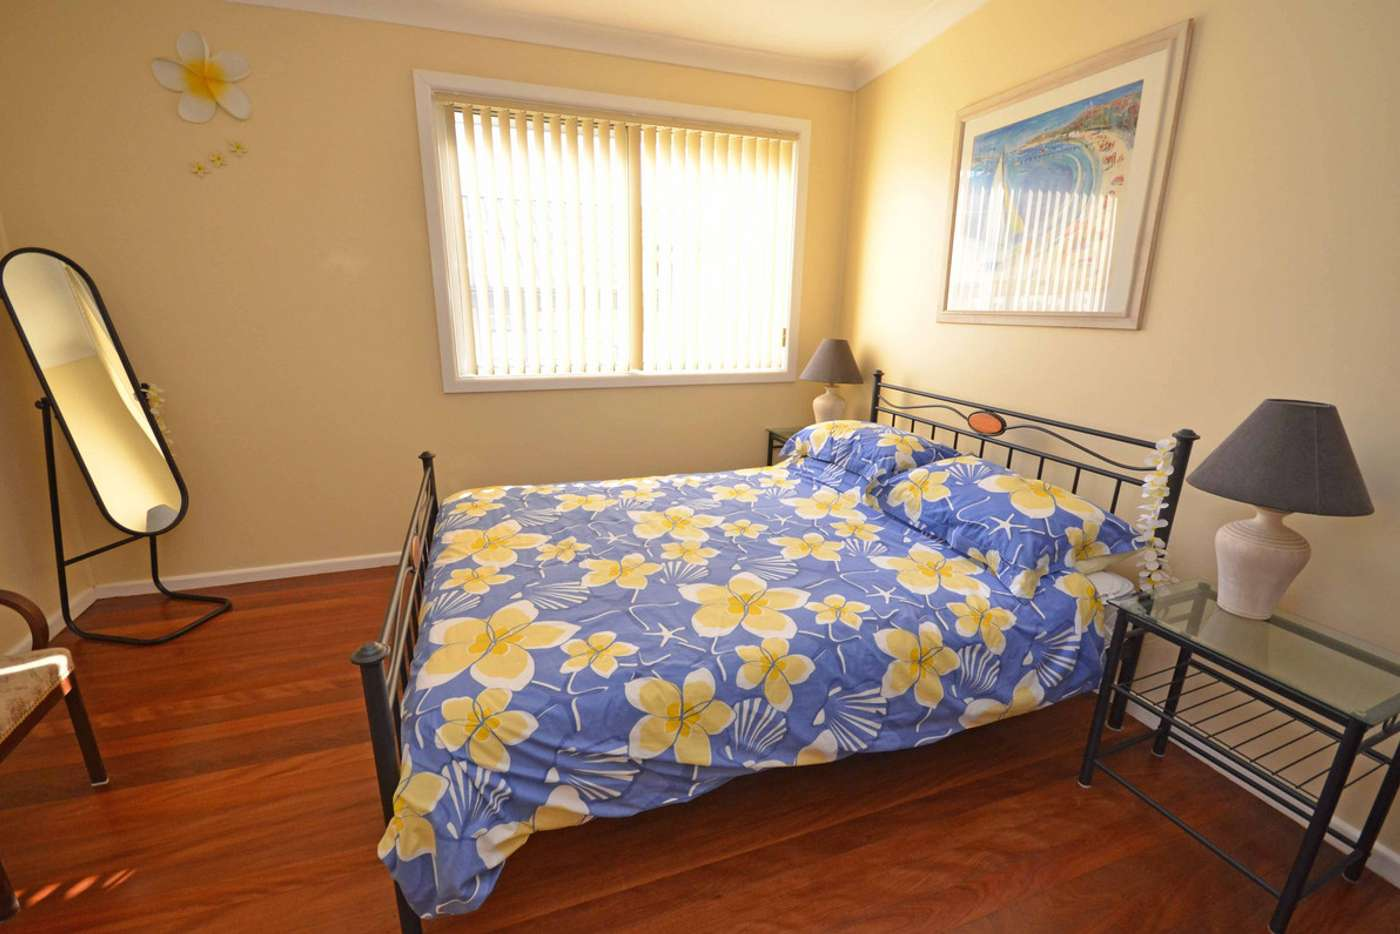 Sixth view of Homely house listing, 15 Alfred Street, North Haven NSW 2443